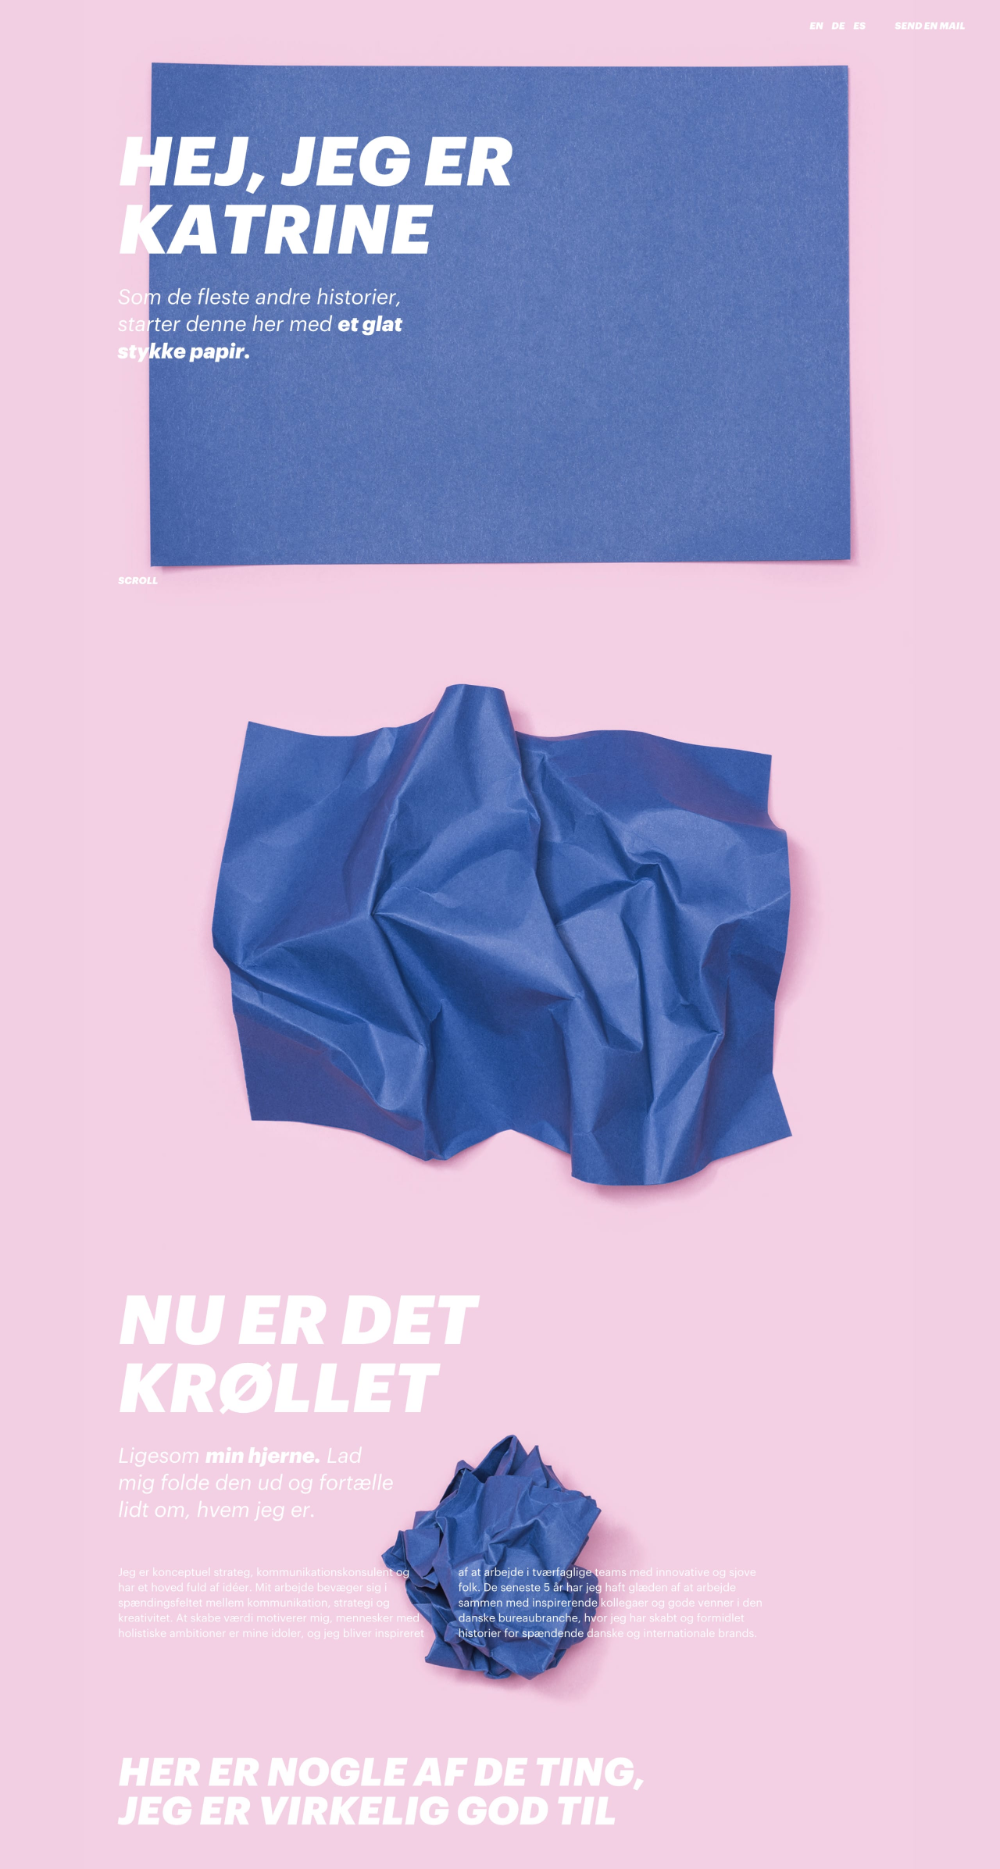 Awesome Crumpled Paper Animation As You Scroll The One Pager Of Katrine Mehl Who Is Fittingly A Communication In 2020 With Images One Page Website One Pager Design Web App Design